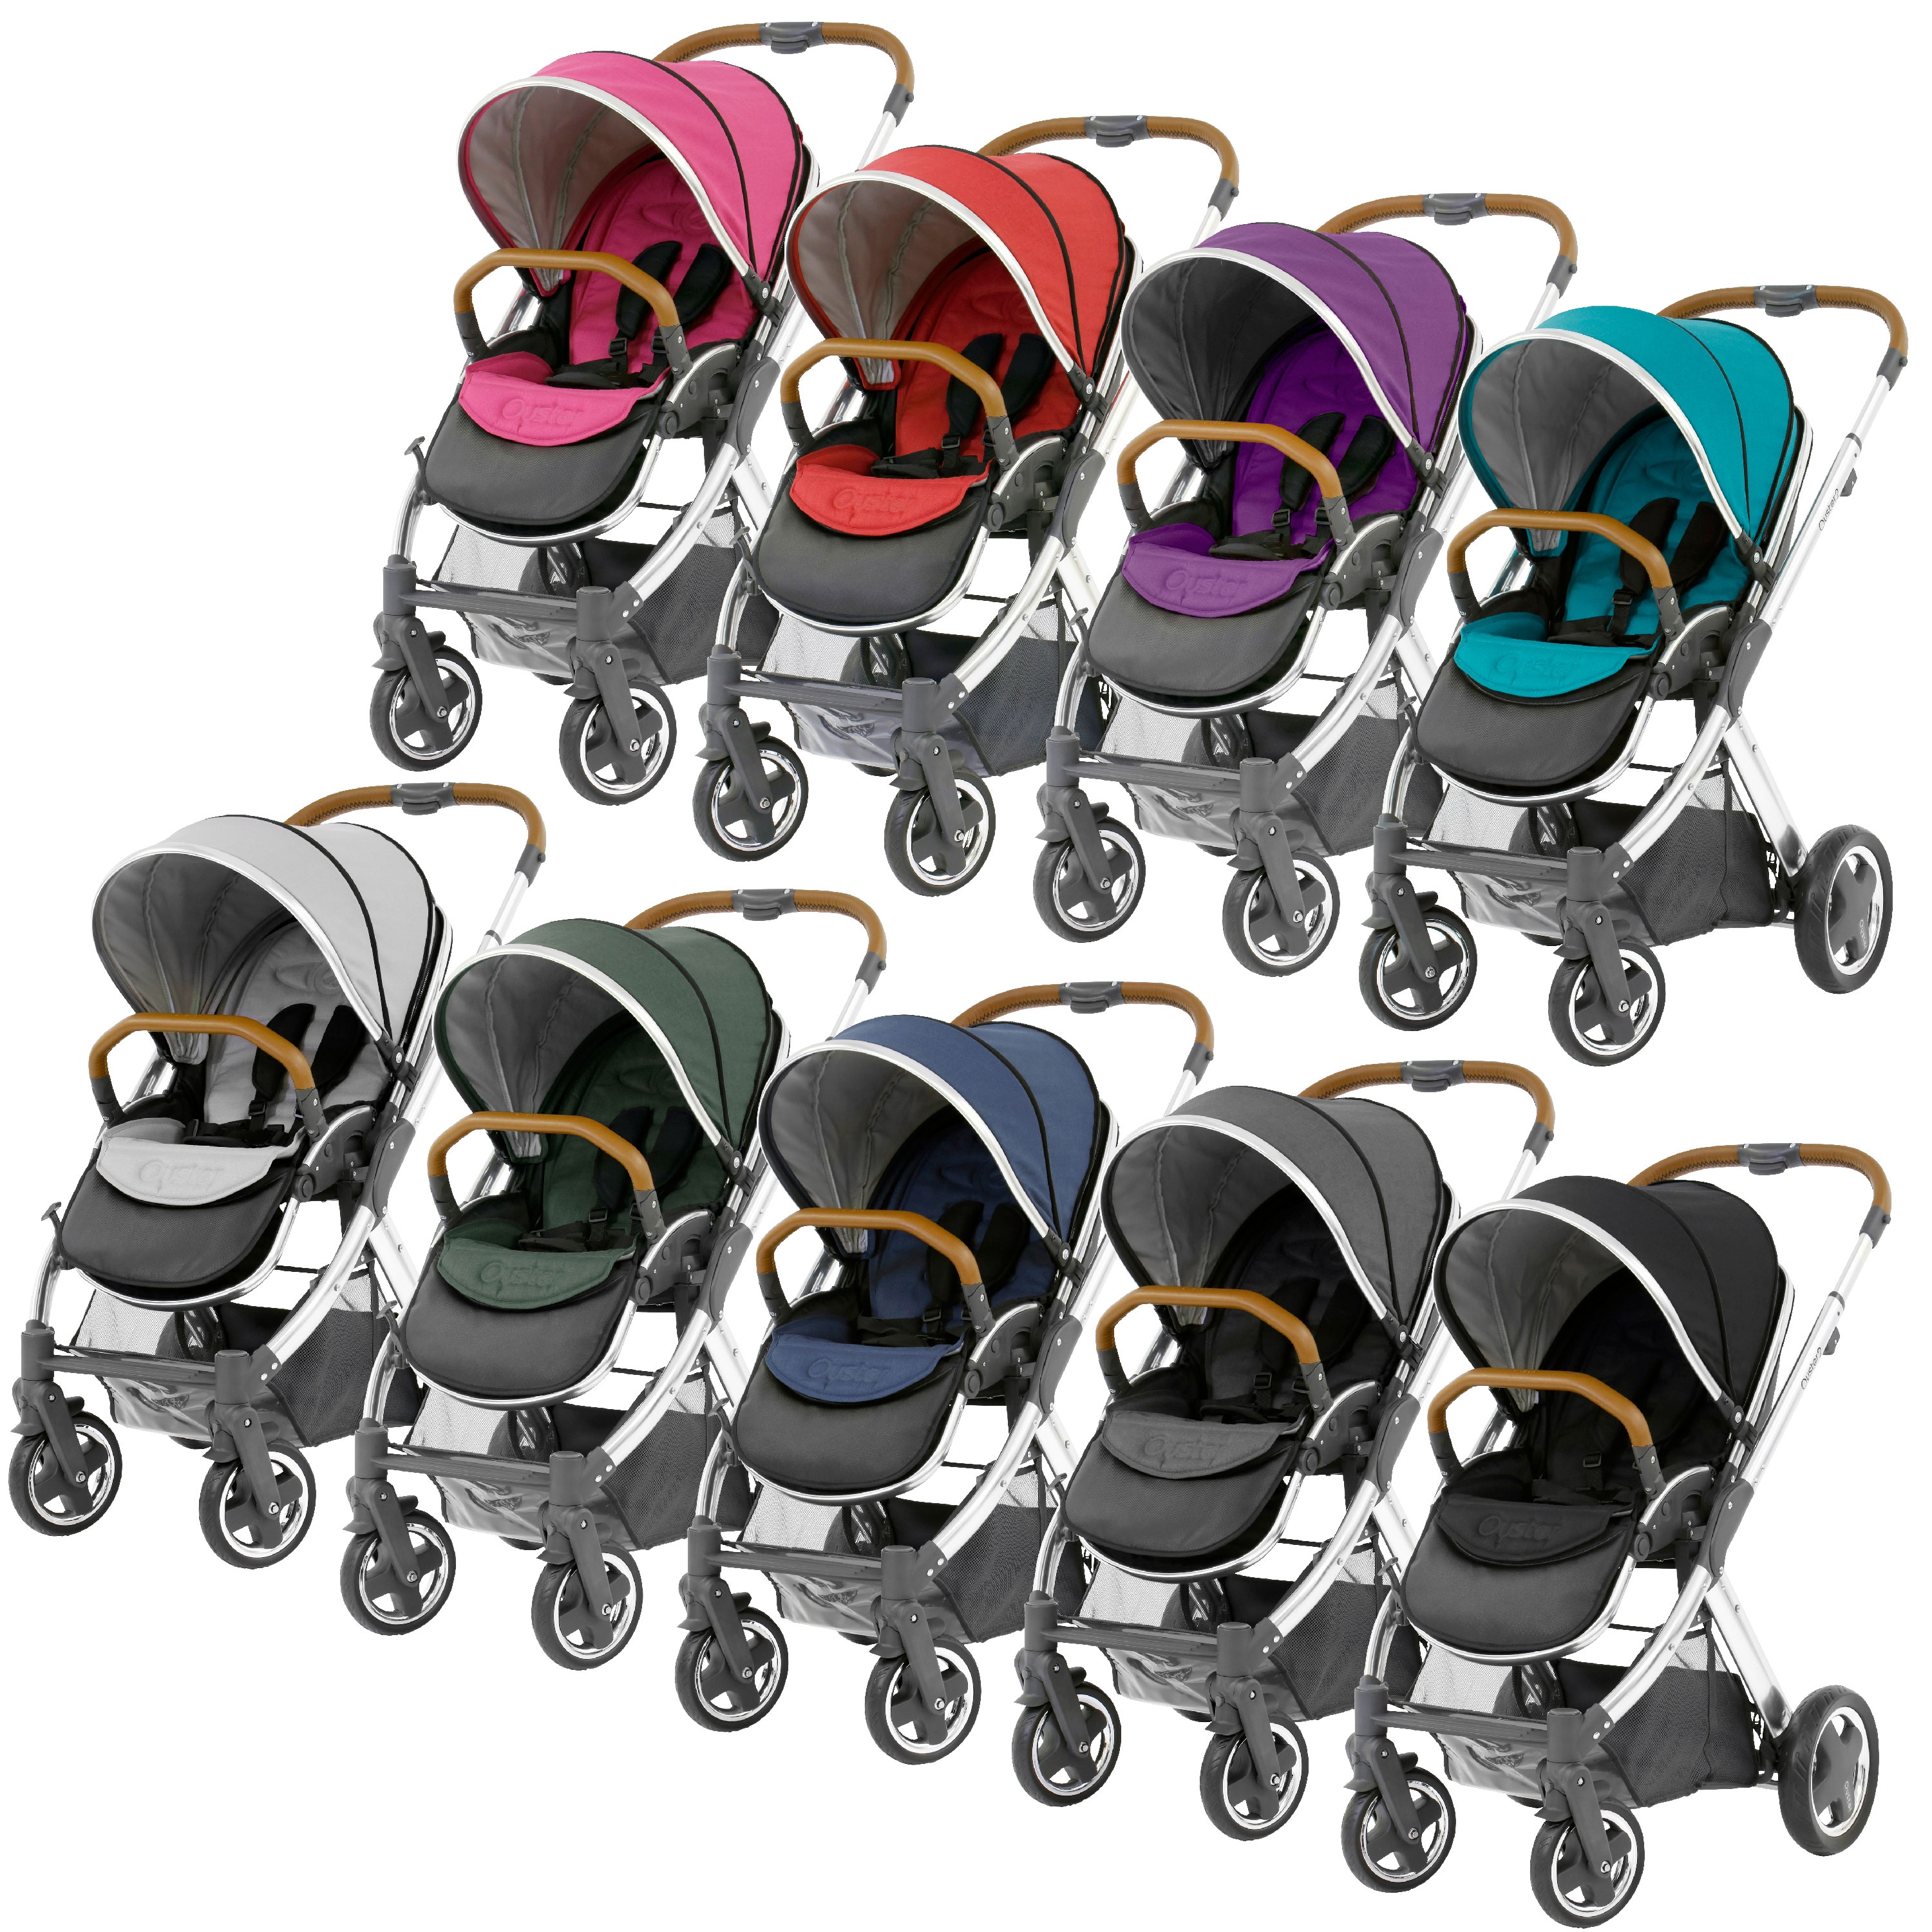 BabyStyle Oyster 2 Pushchair And Colour Pack.